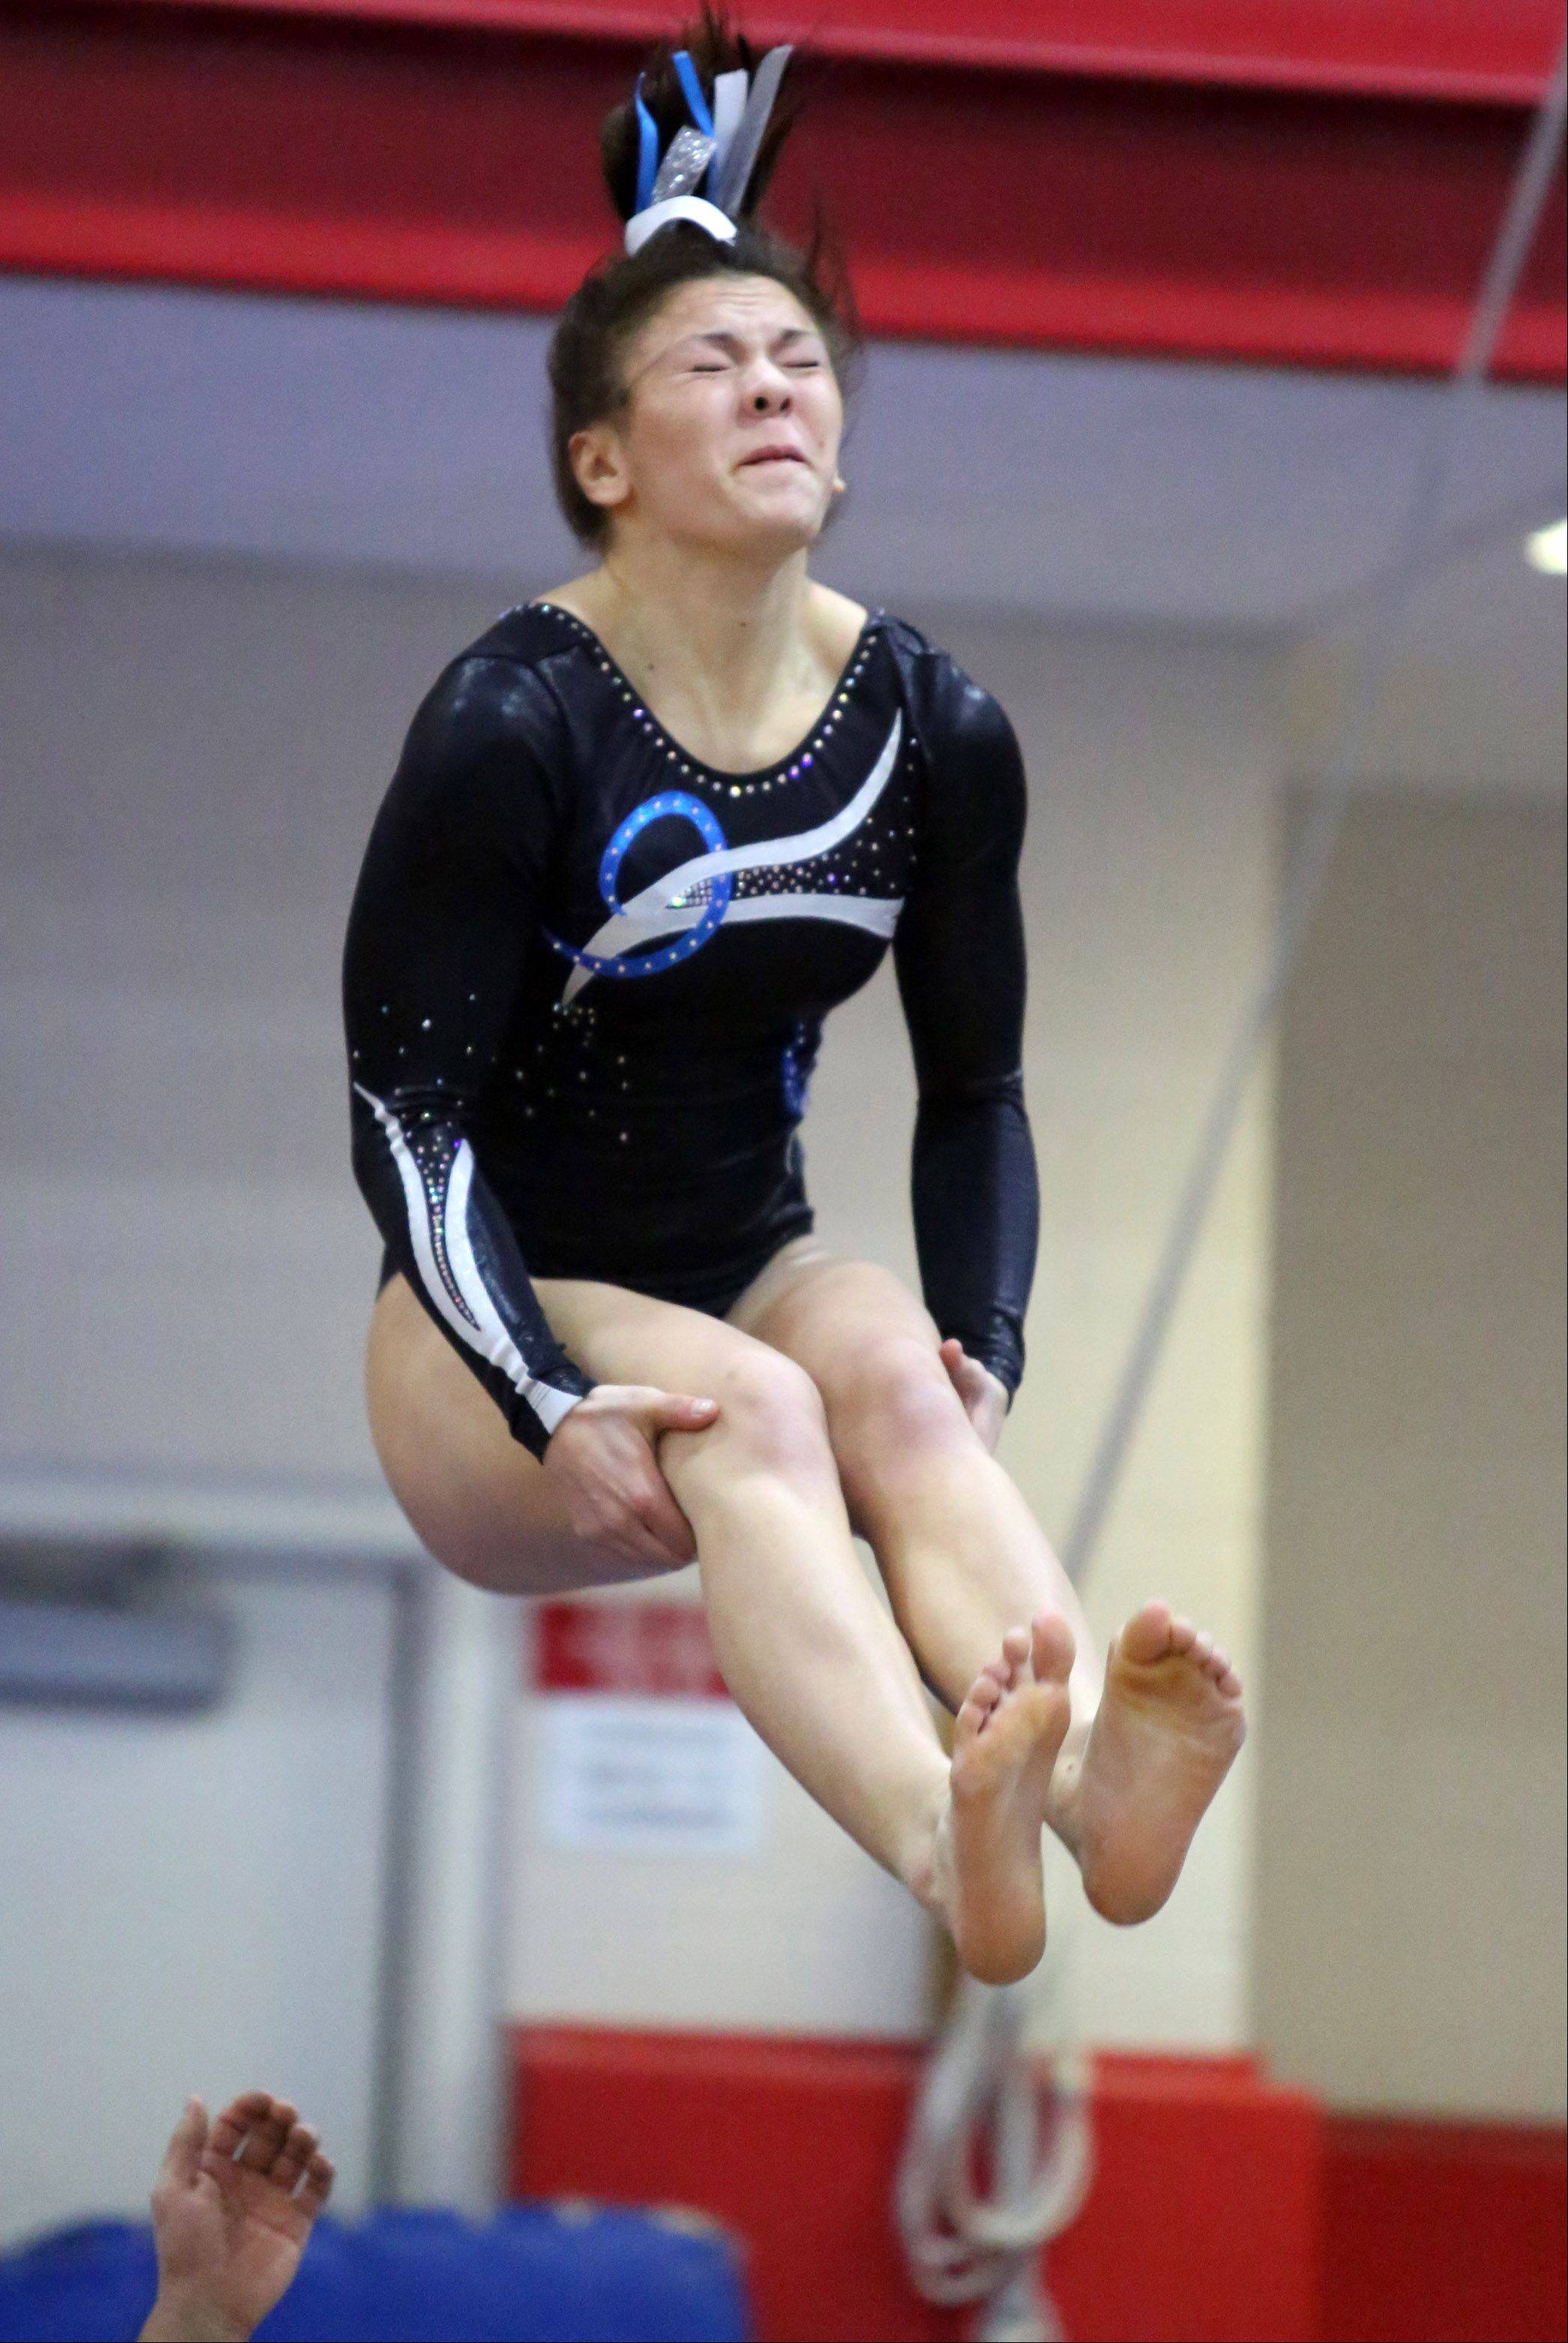 Prospect's Jackie Difonzo on the vault at the 25th annual Palatine Invitational on Saturday.